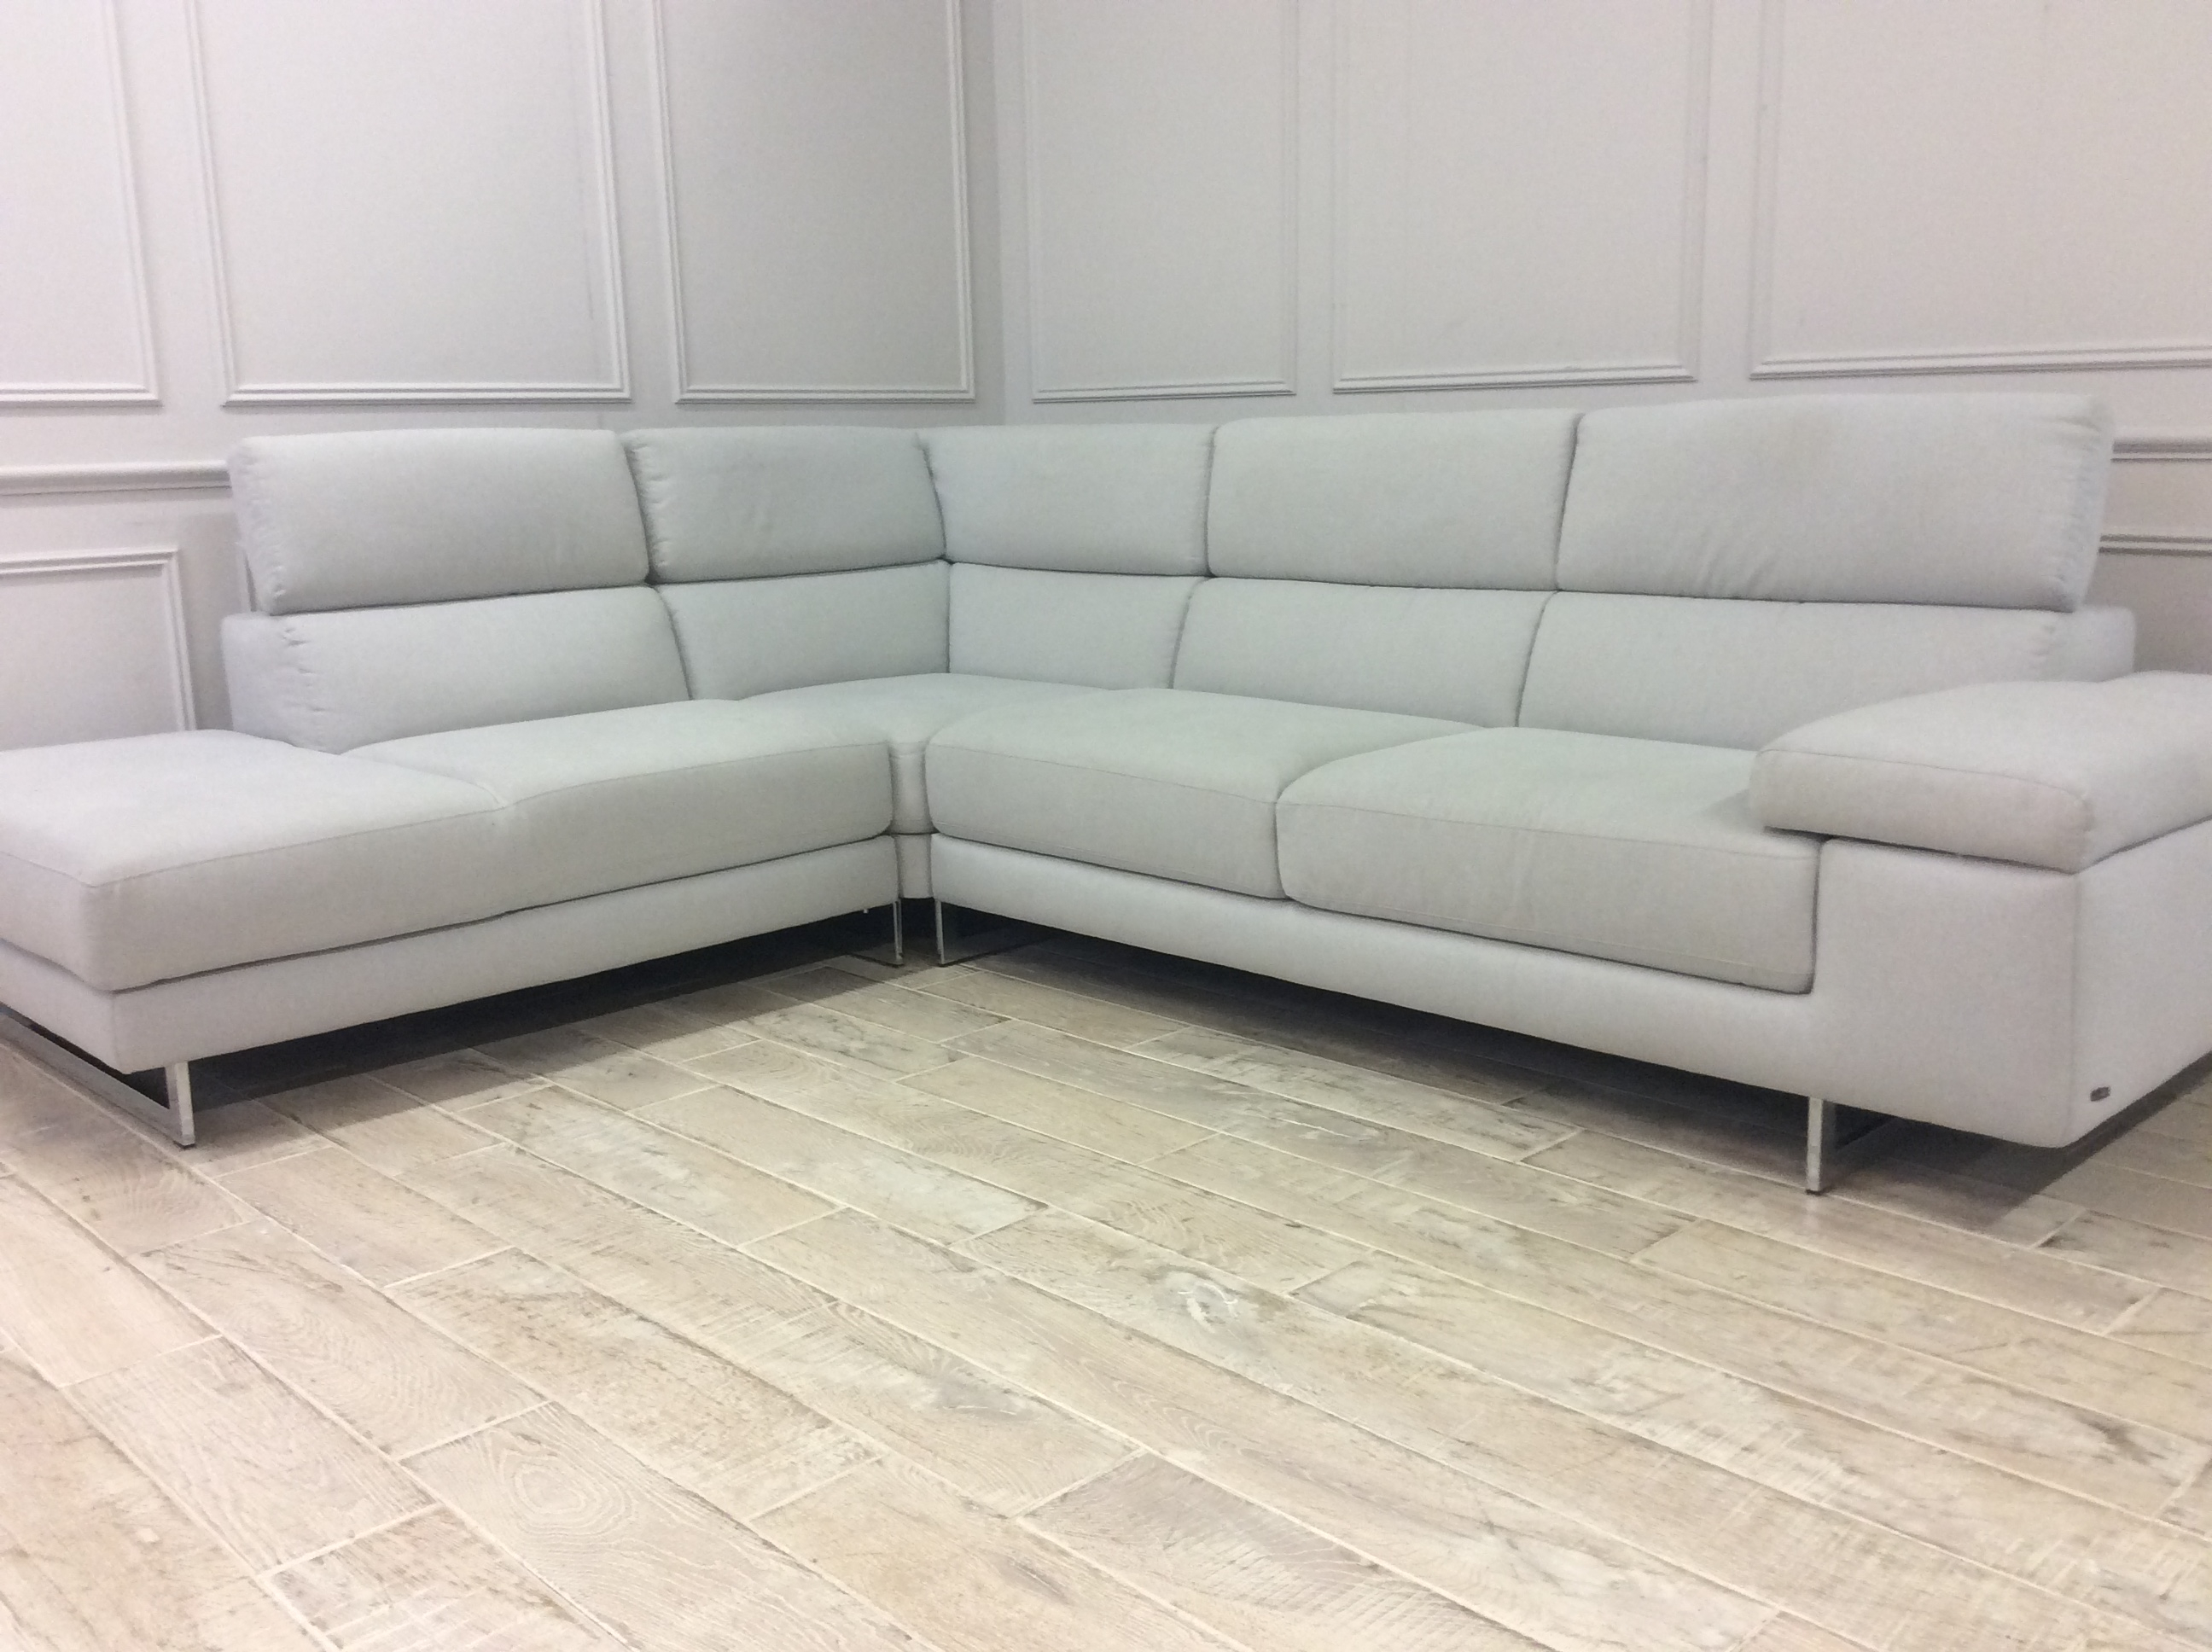 Product photograph showing Milano Corner Sofa In Italian Espero 01 Fabric With Adjustable Headrests And Chrome Legs